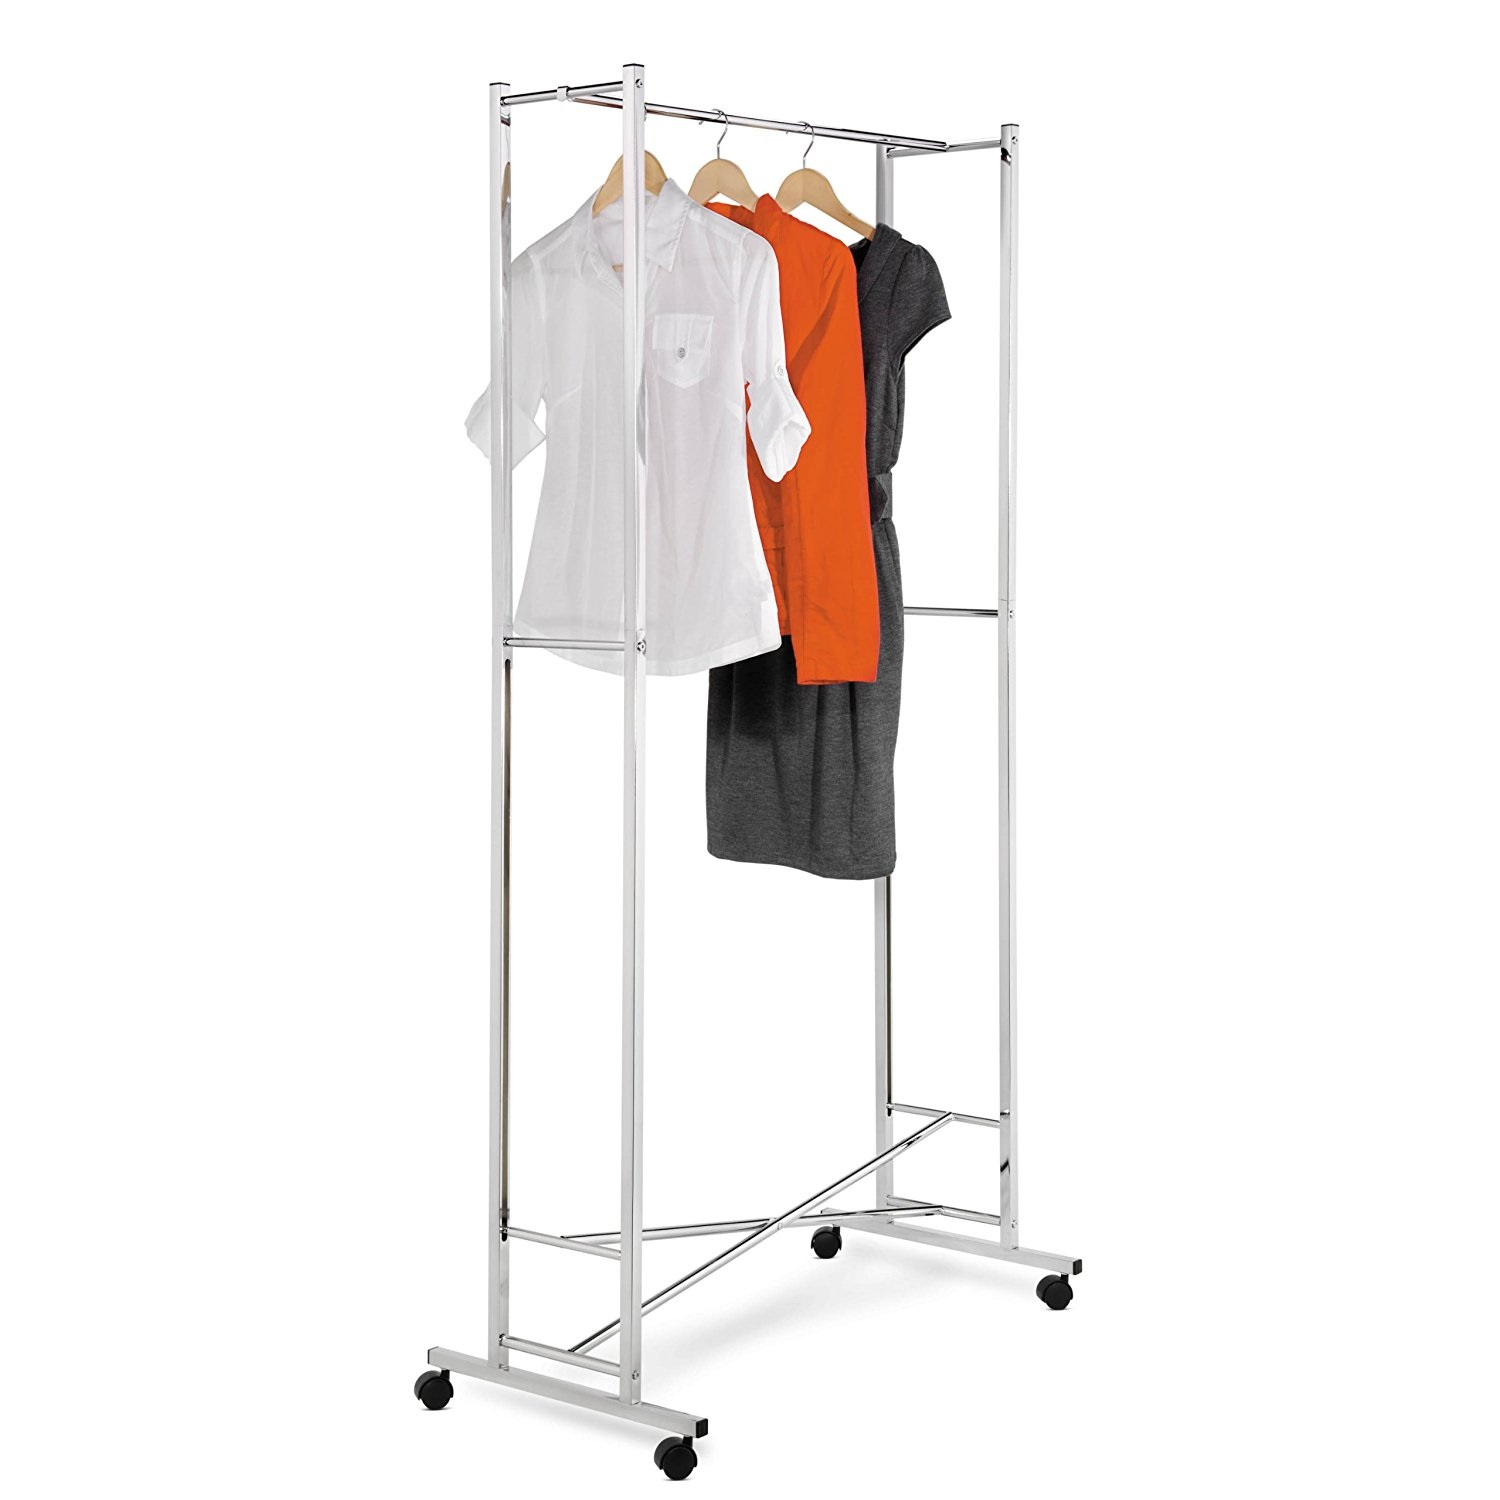 Honey-Can-Do Collapsible Garment Rack